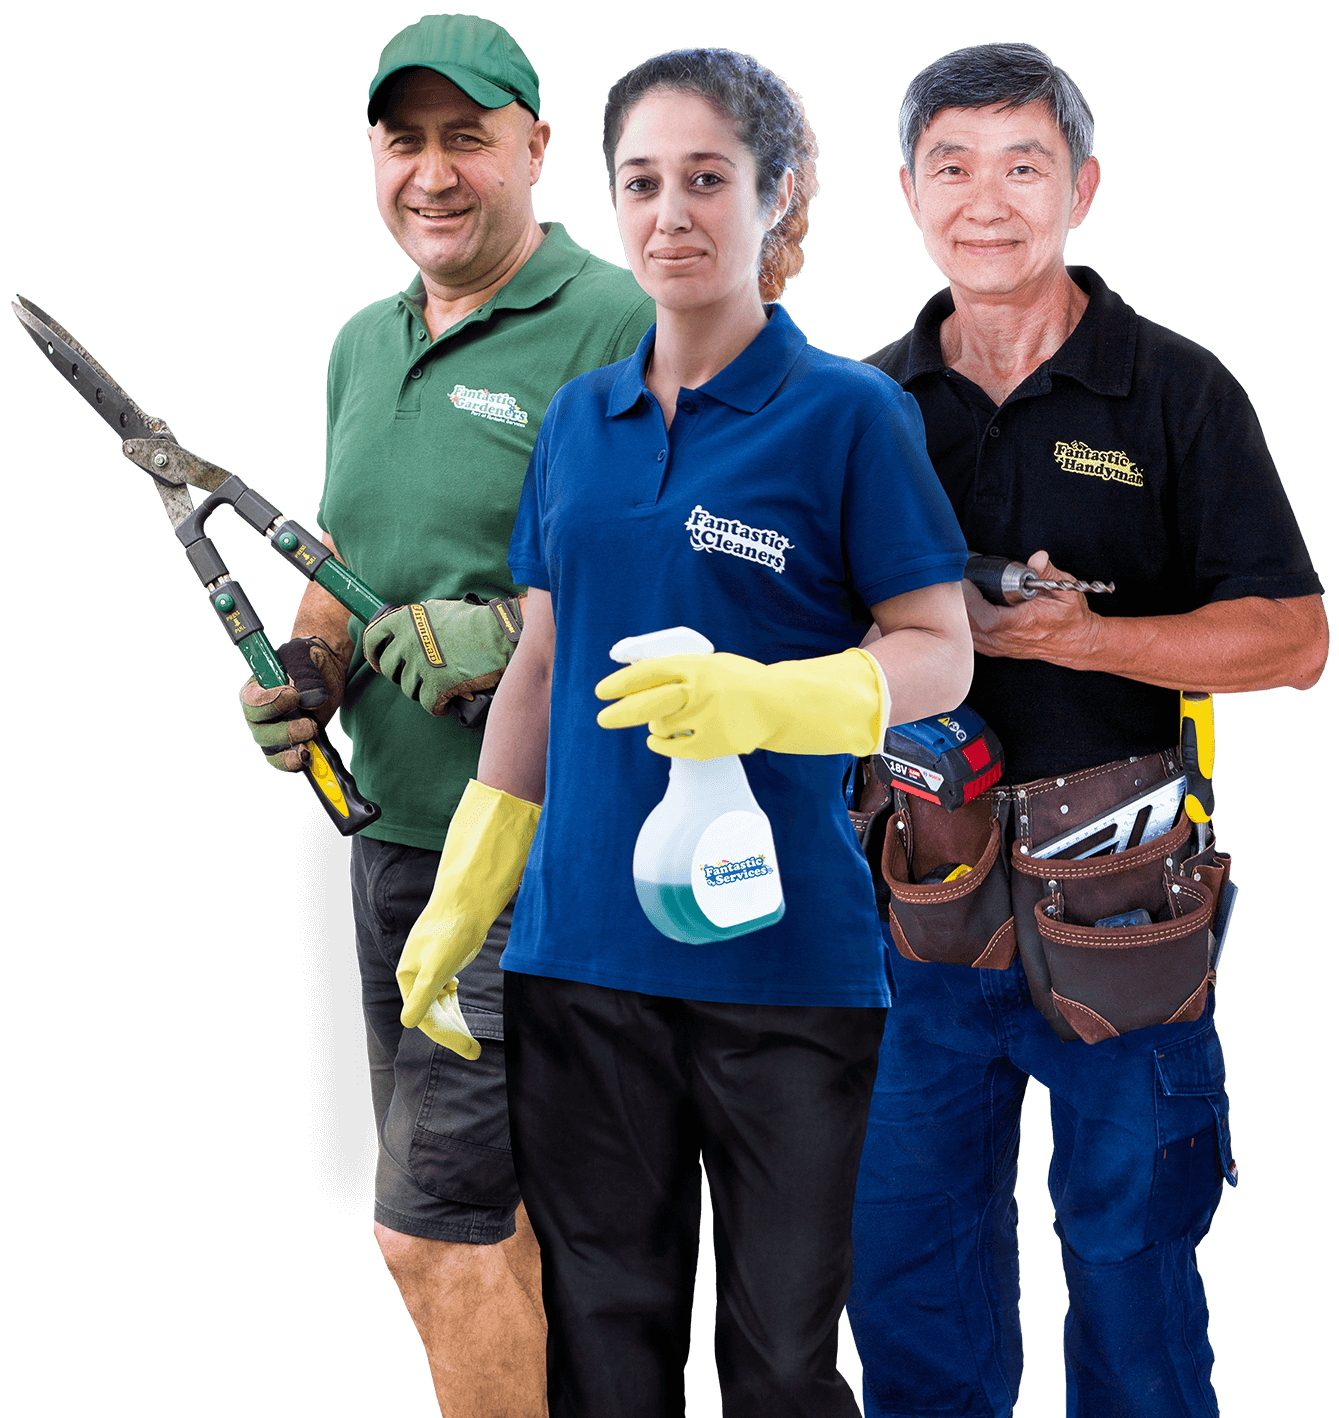 Best Handyman & Home Repair Services | GET FREE QUOTE